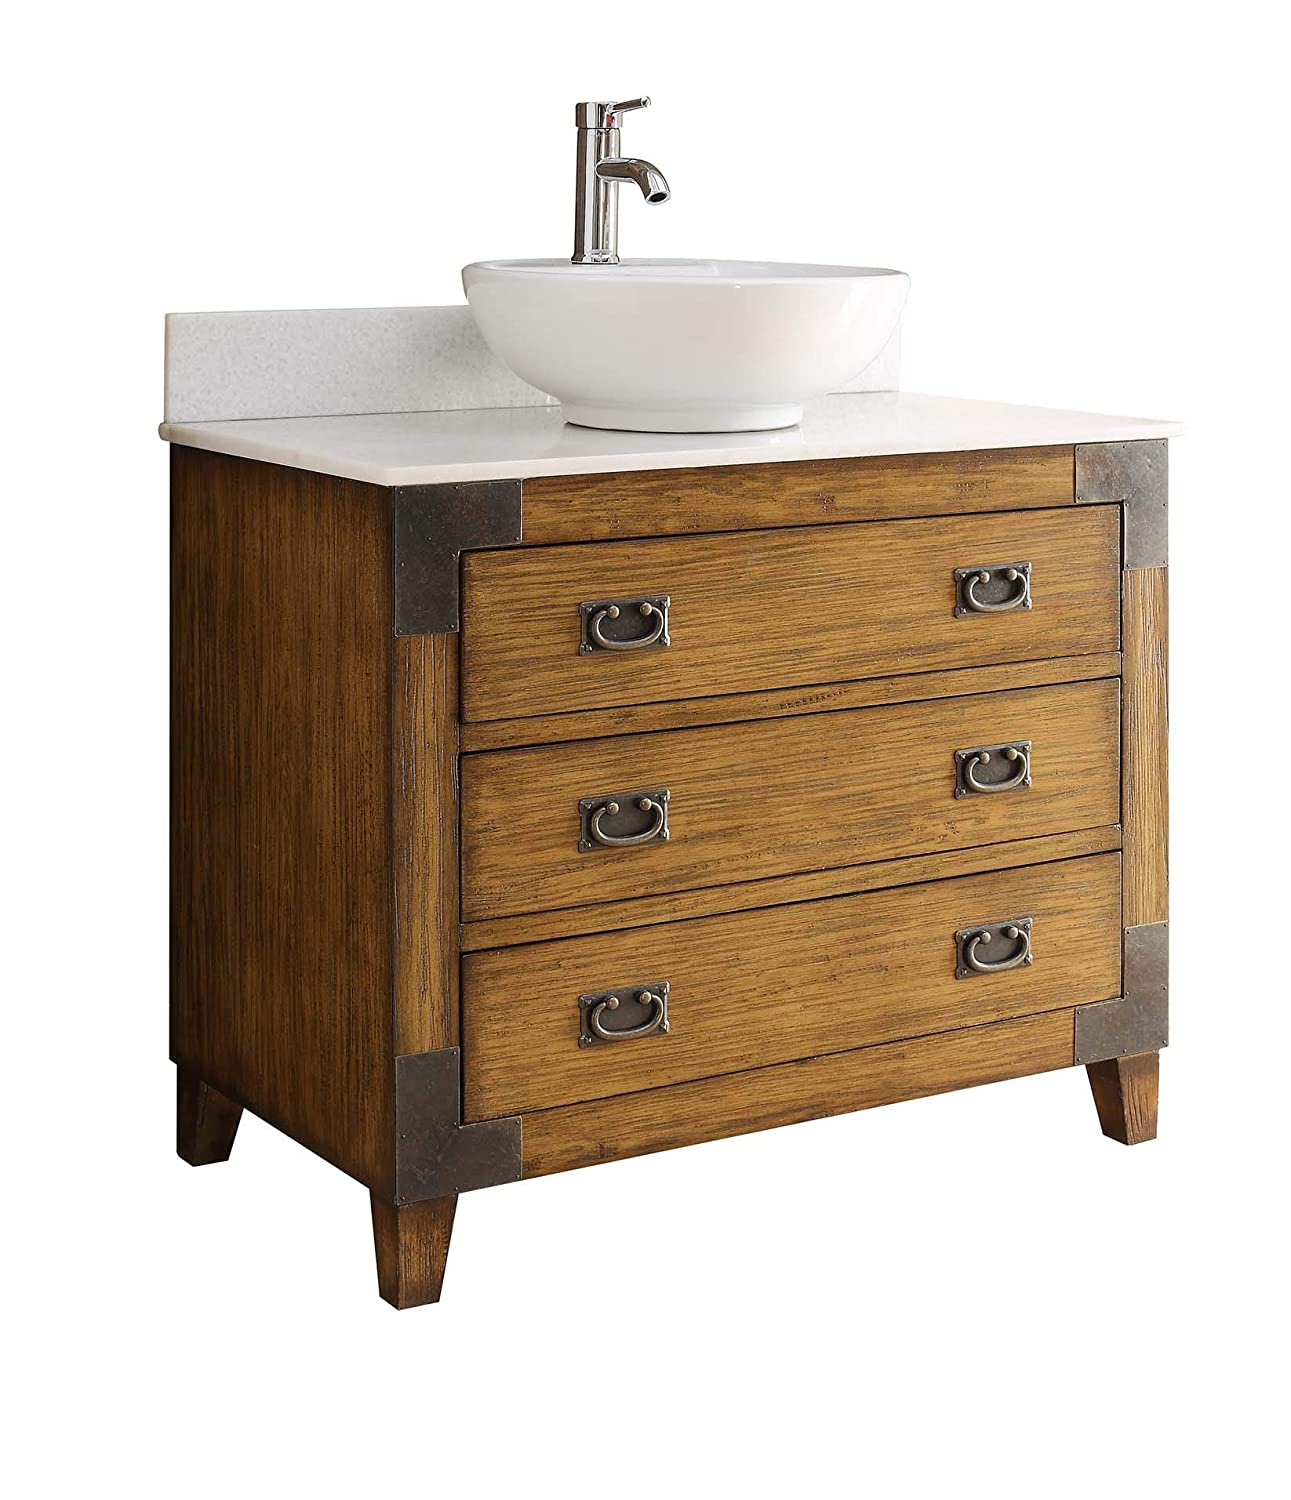 36 Asian-inspired All Wood Construction Akira Vessel Sink Bathroom vanity CF35535